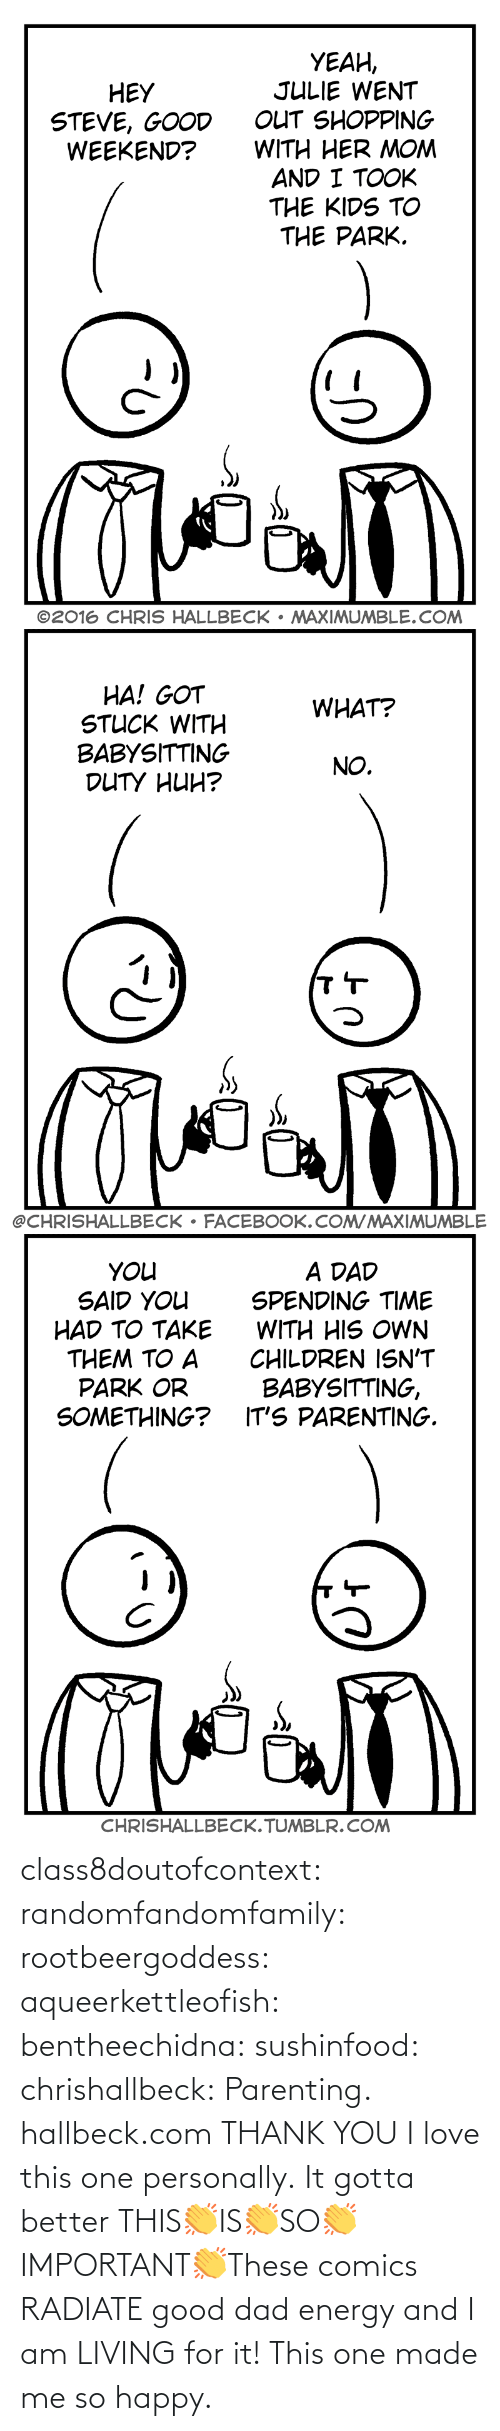 I Am: class8doutofcontext: randomfandomfamily:  rootbeergoddess:  aqueerkettleofish:  bentheechidna:  sushinfood:  chrishallbeck:  Parenting. hallbeck.com  THANK YOU  I love this one personally.    It gotta better   THIS👏IS👏SO👏IMPORTANT👏These comics RADIATE good dad energy and I am LIVING for it!    This one made me so happy.